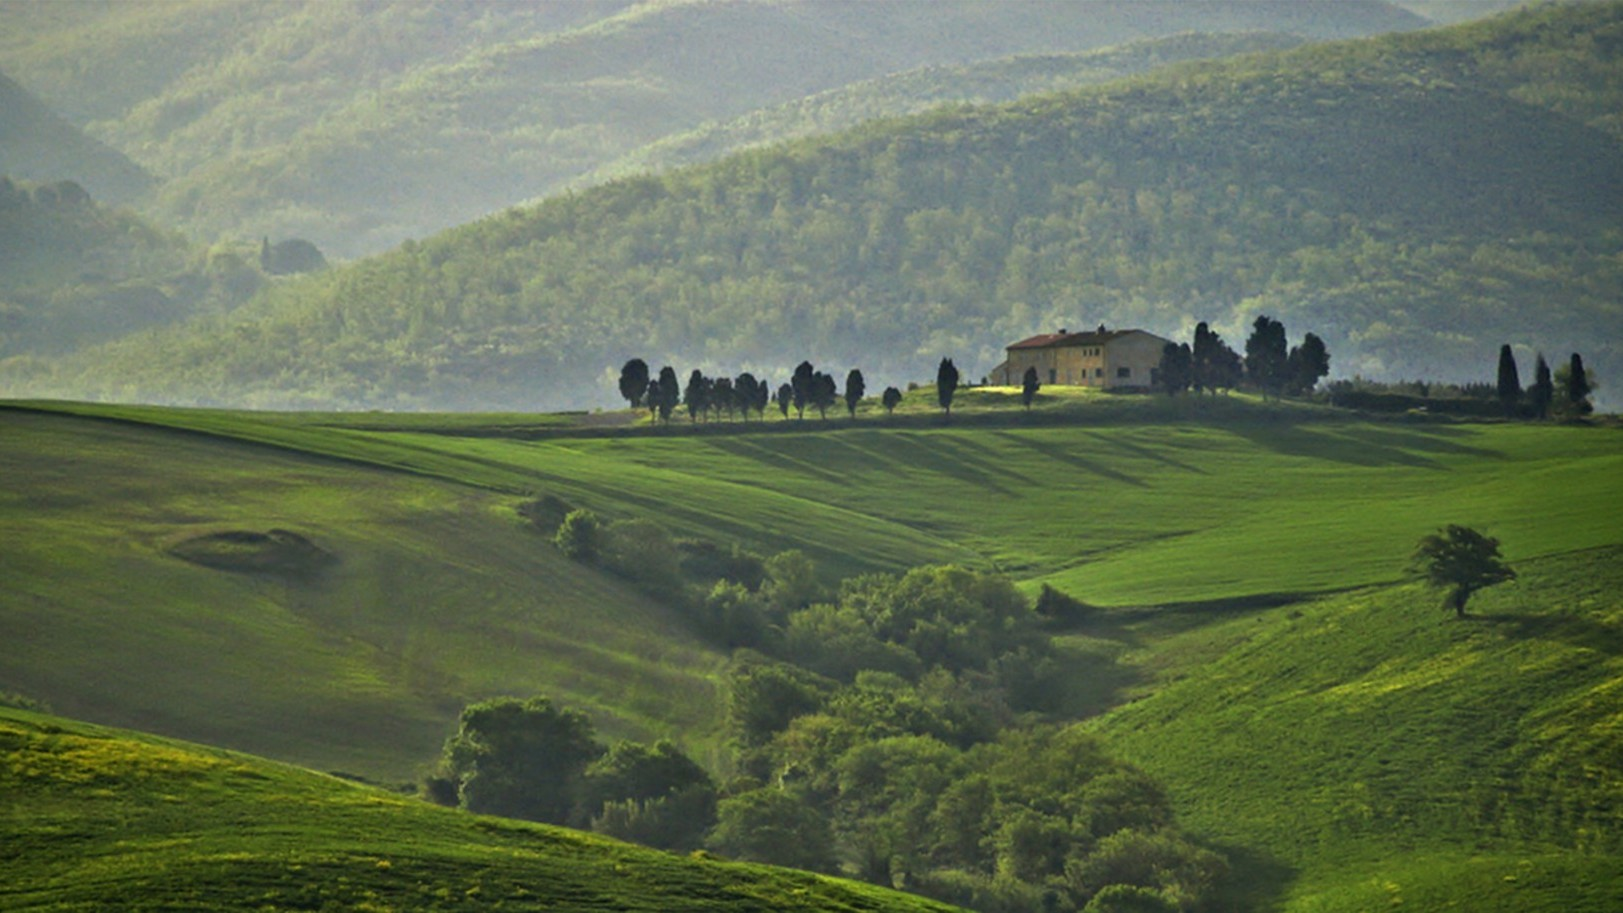 Wedding planning in Tuscany